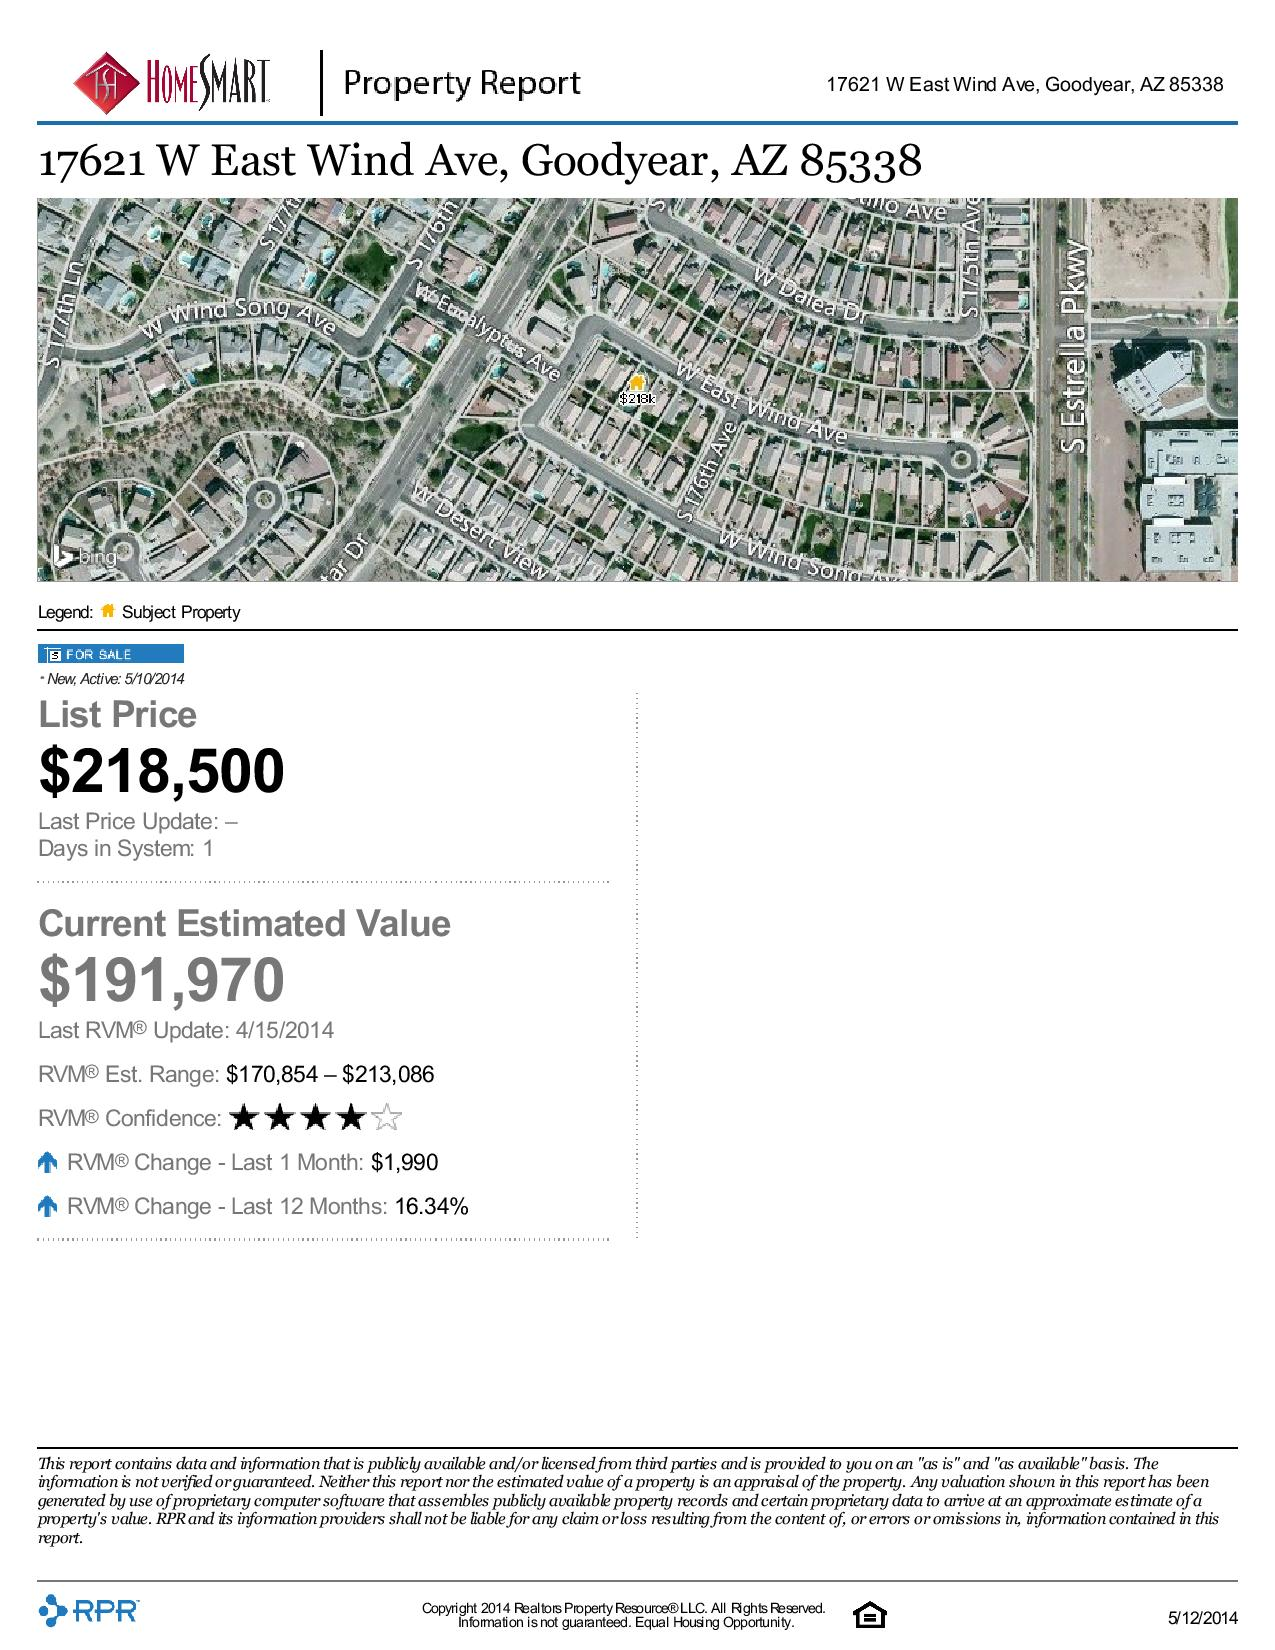 17621-W-East-Wind-Ave-Goodyear-AZ-85338-page-002